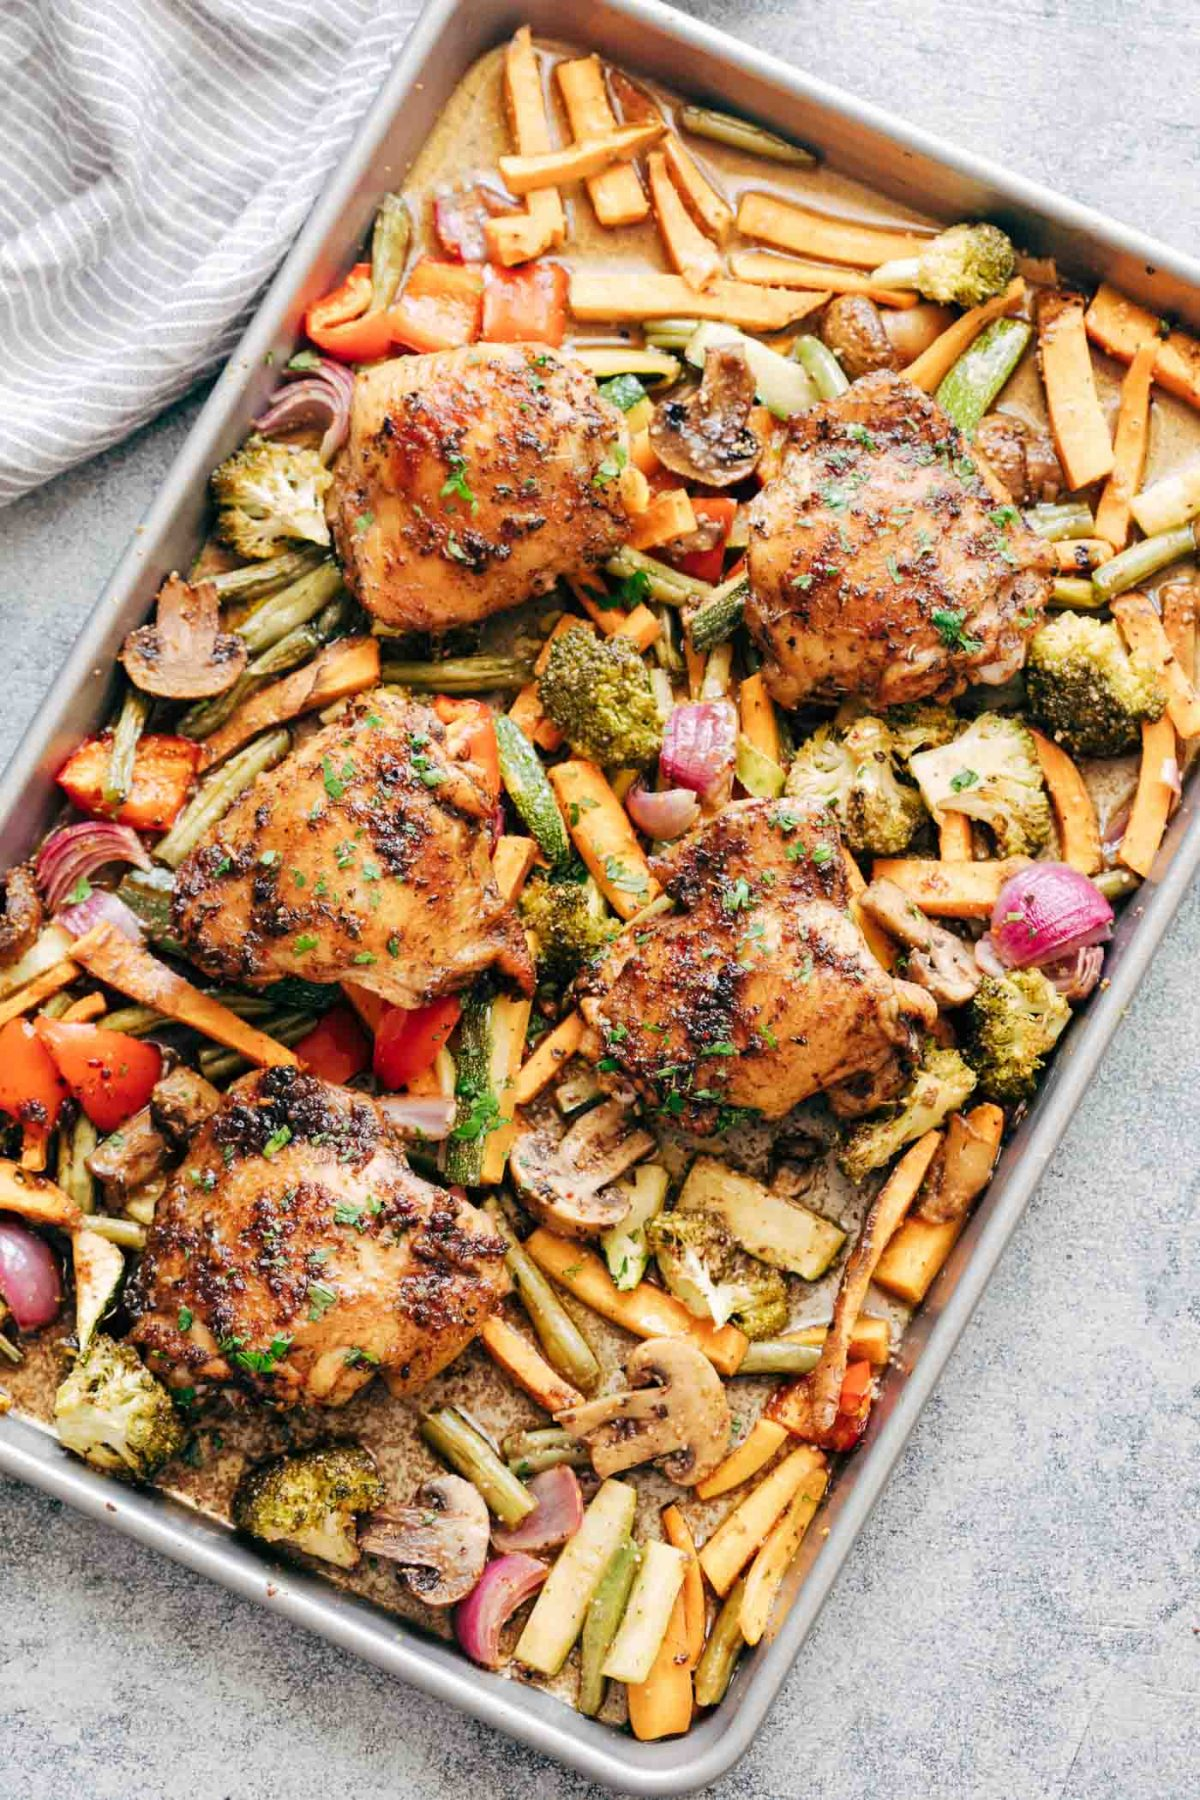 20 Sheet Pan Dinners Your Kids Will Actually Eat. Chicken, Potato and Broccoli 3 ways. #sheetpan #quick #dinner #chicken